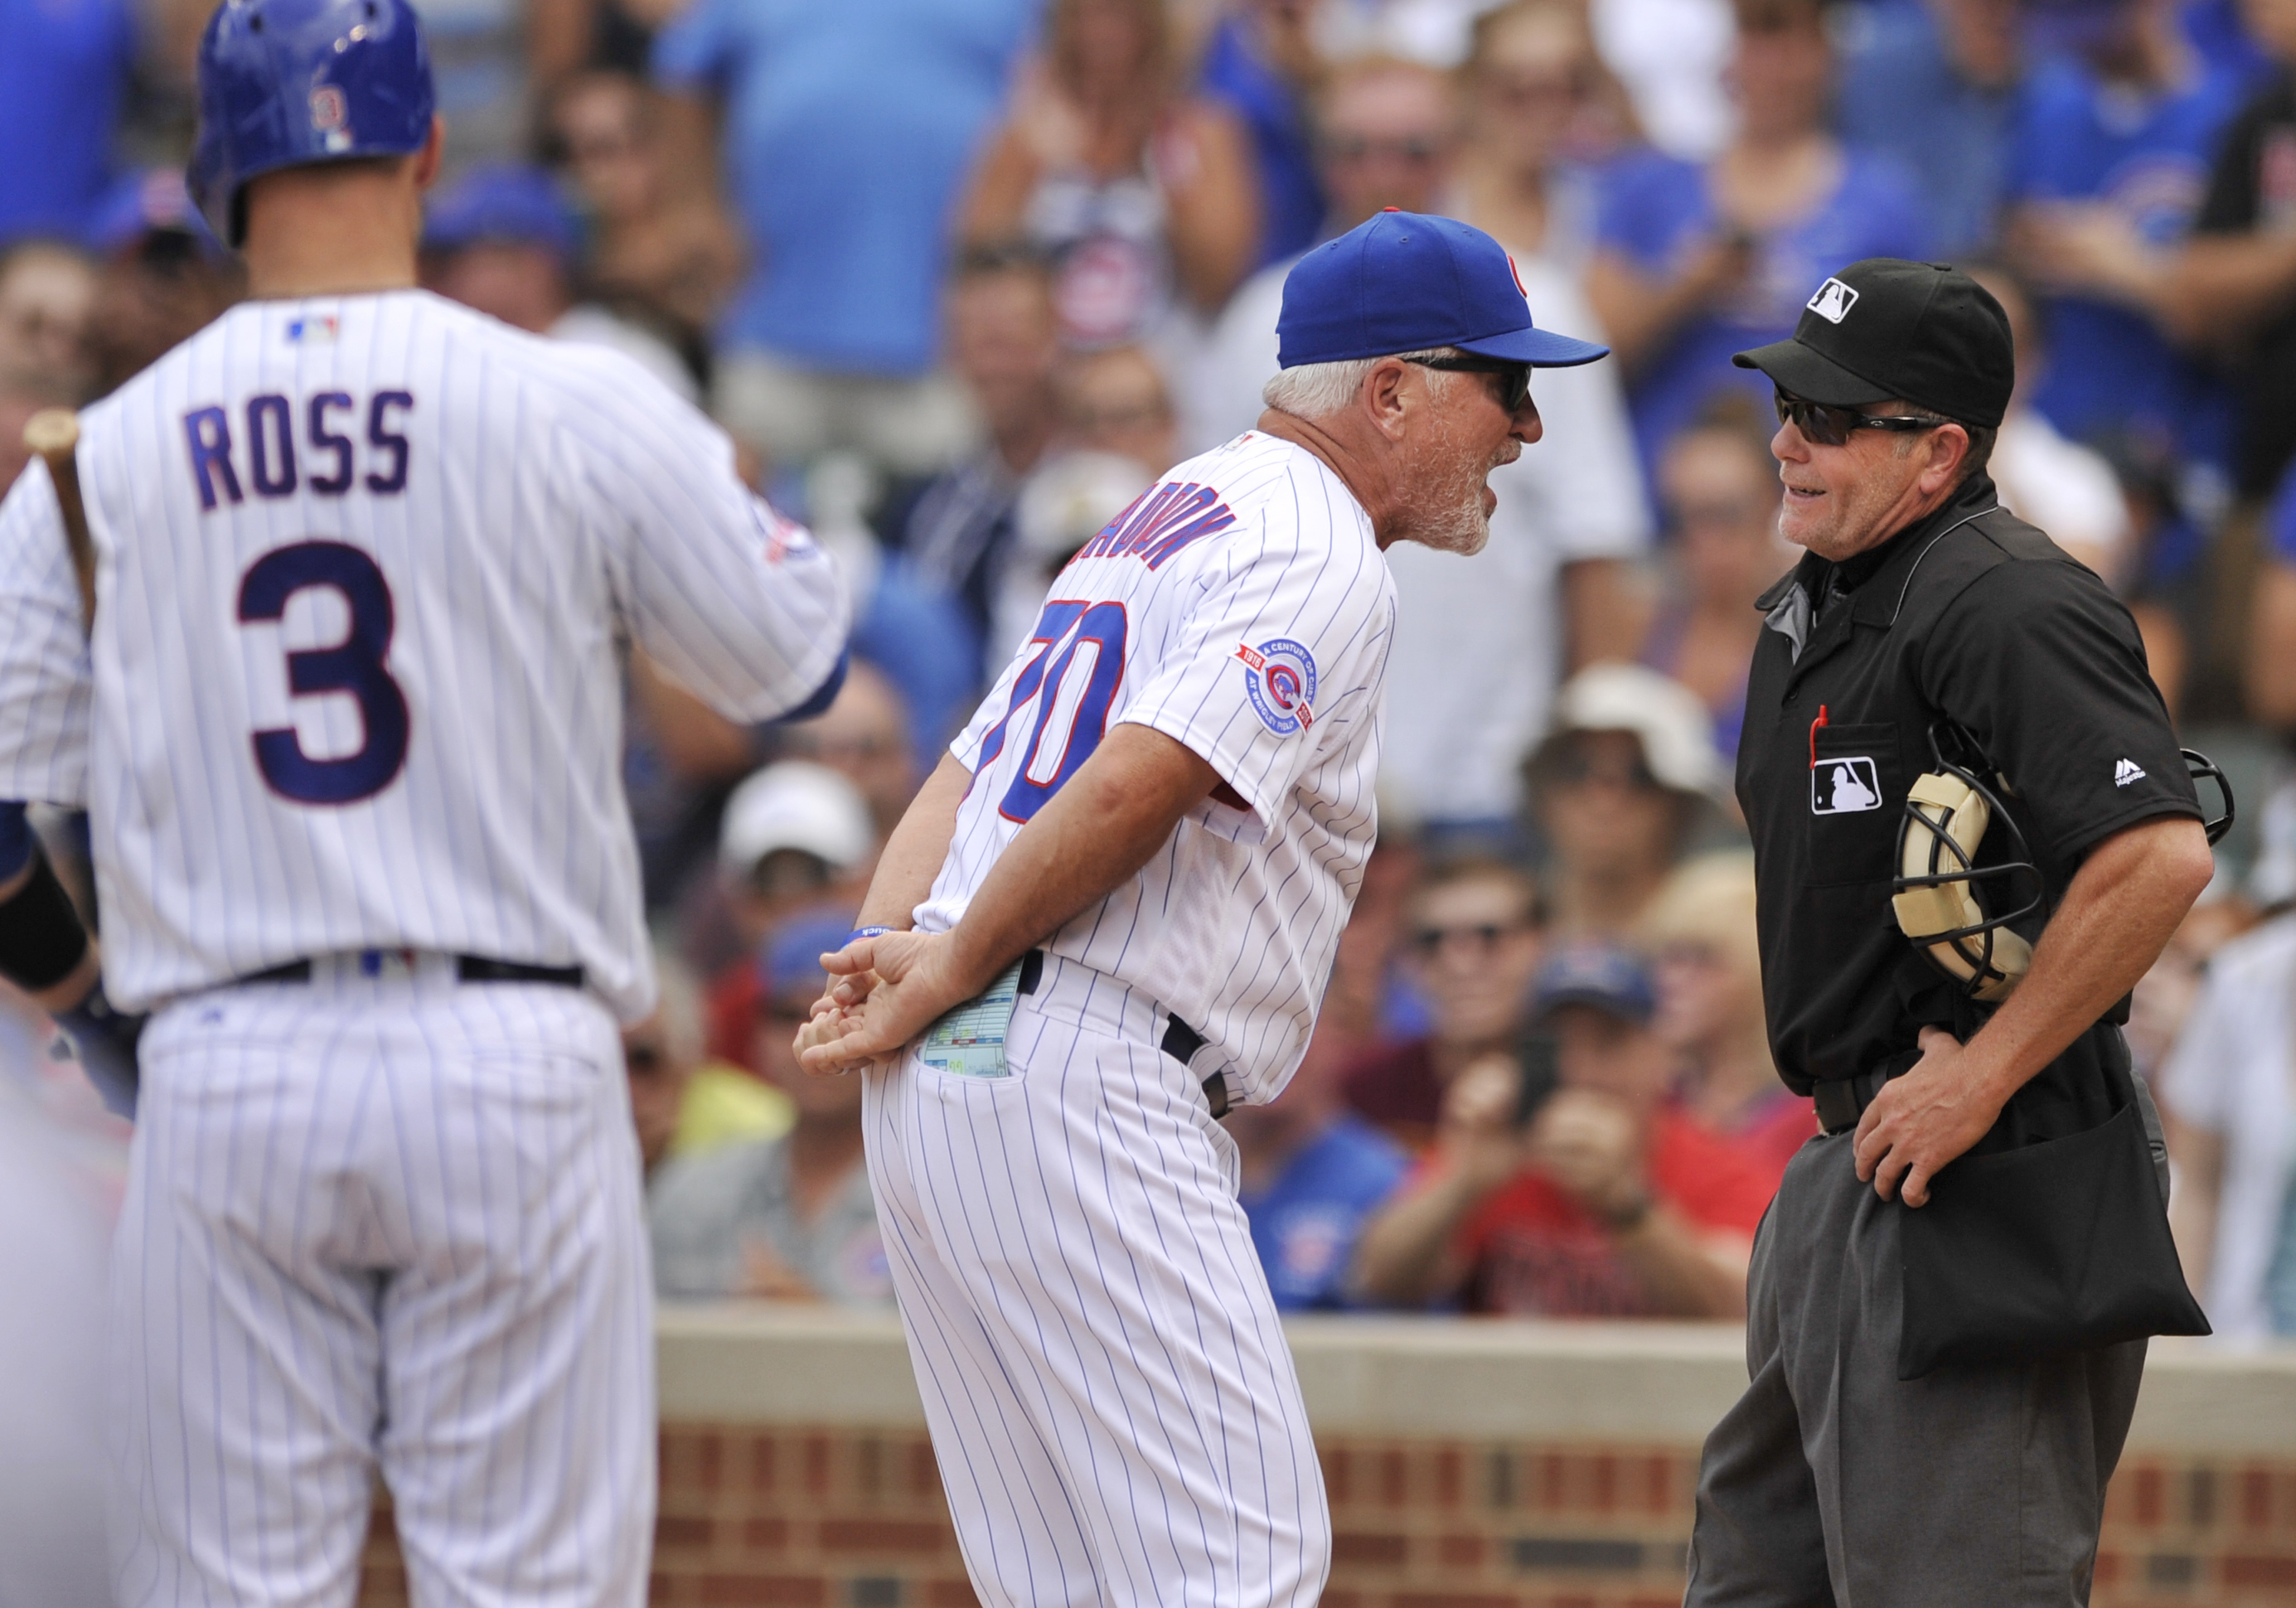 Chicago Cubs manager Joe Maddon (70) argues with home plate umpire Jerry Meals after Meals ejected Maddon for arguing a strike call on Chicago Cubs' David Ross (3) during the second inning of a baseball game against the Cincinnati Reds Tuesday, July 5, 20